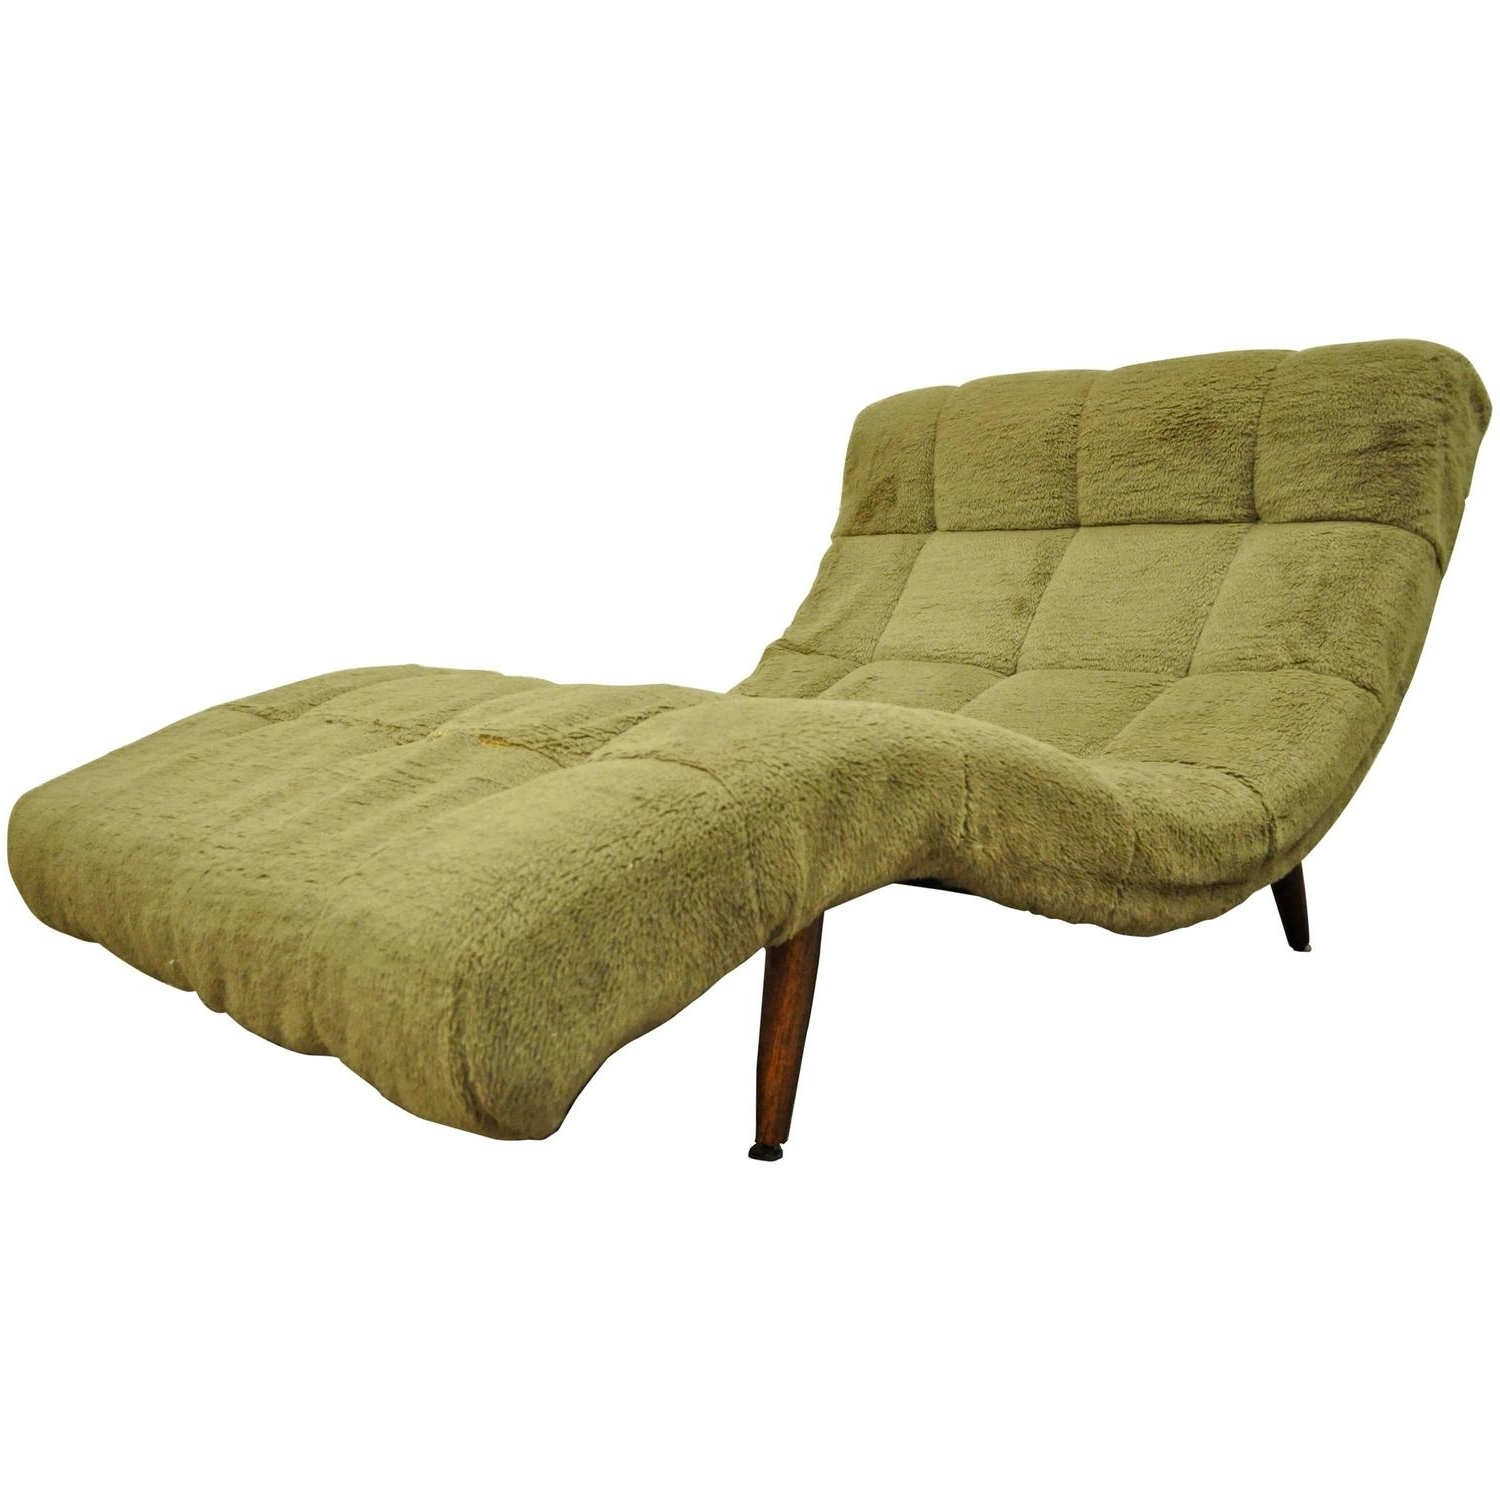 Mid Century Modern Chaises With Newest Midcentury Modern Double Wide Wave Chaise Lounge In The Style Of (View 9 of 15)